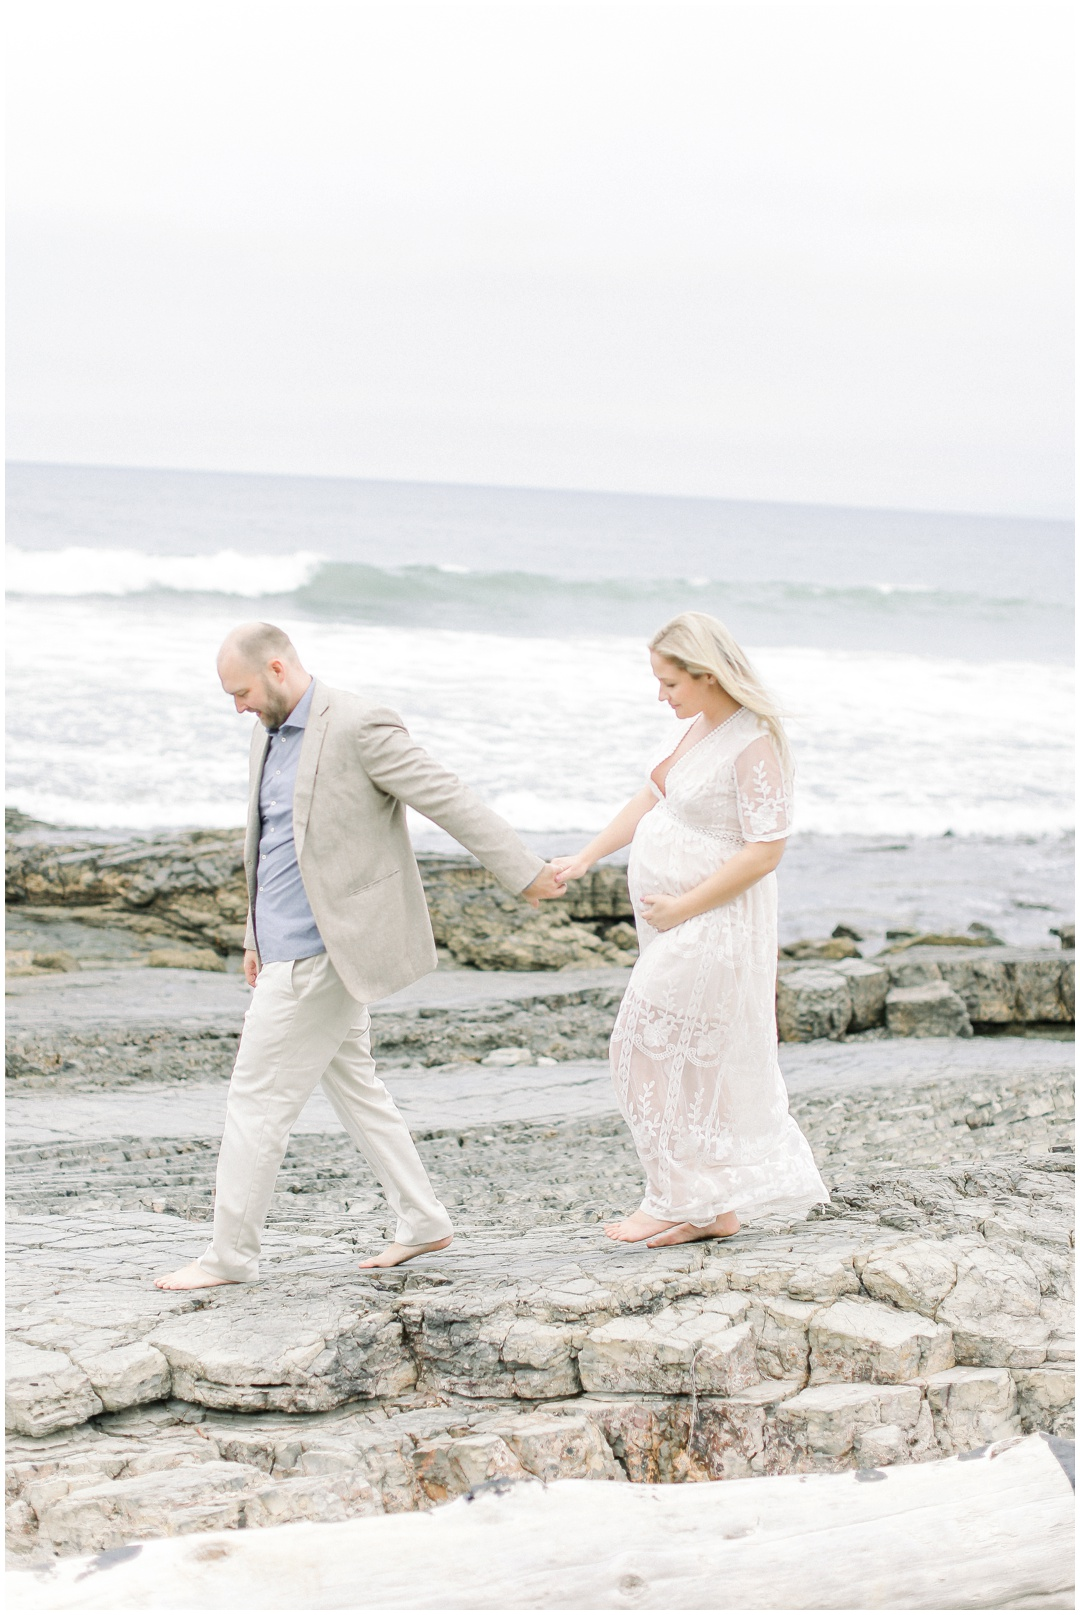 Newport_Beach_Newborn_Light_Airy_Natural_Photographer_Newport_Beach_Photographer_Orange_County_Family_Photographer_Cori_Kleckner_Photography_Newport_Beach_Photographer_Marisa_Podesto_Todd_Podesto__3983.jpg